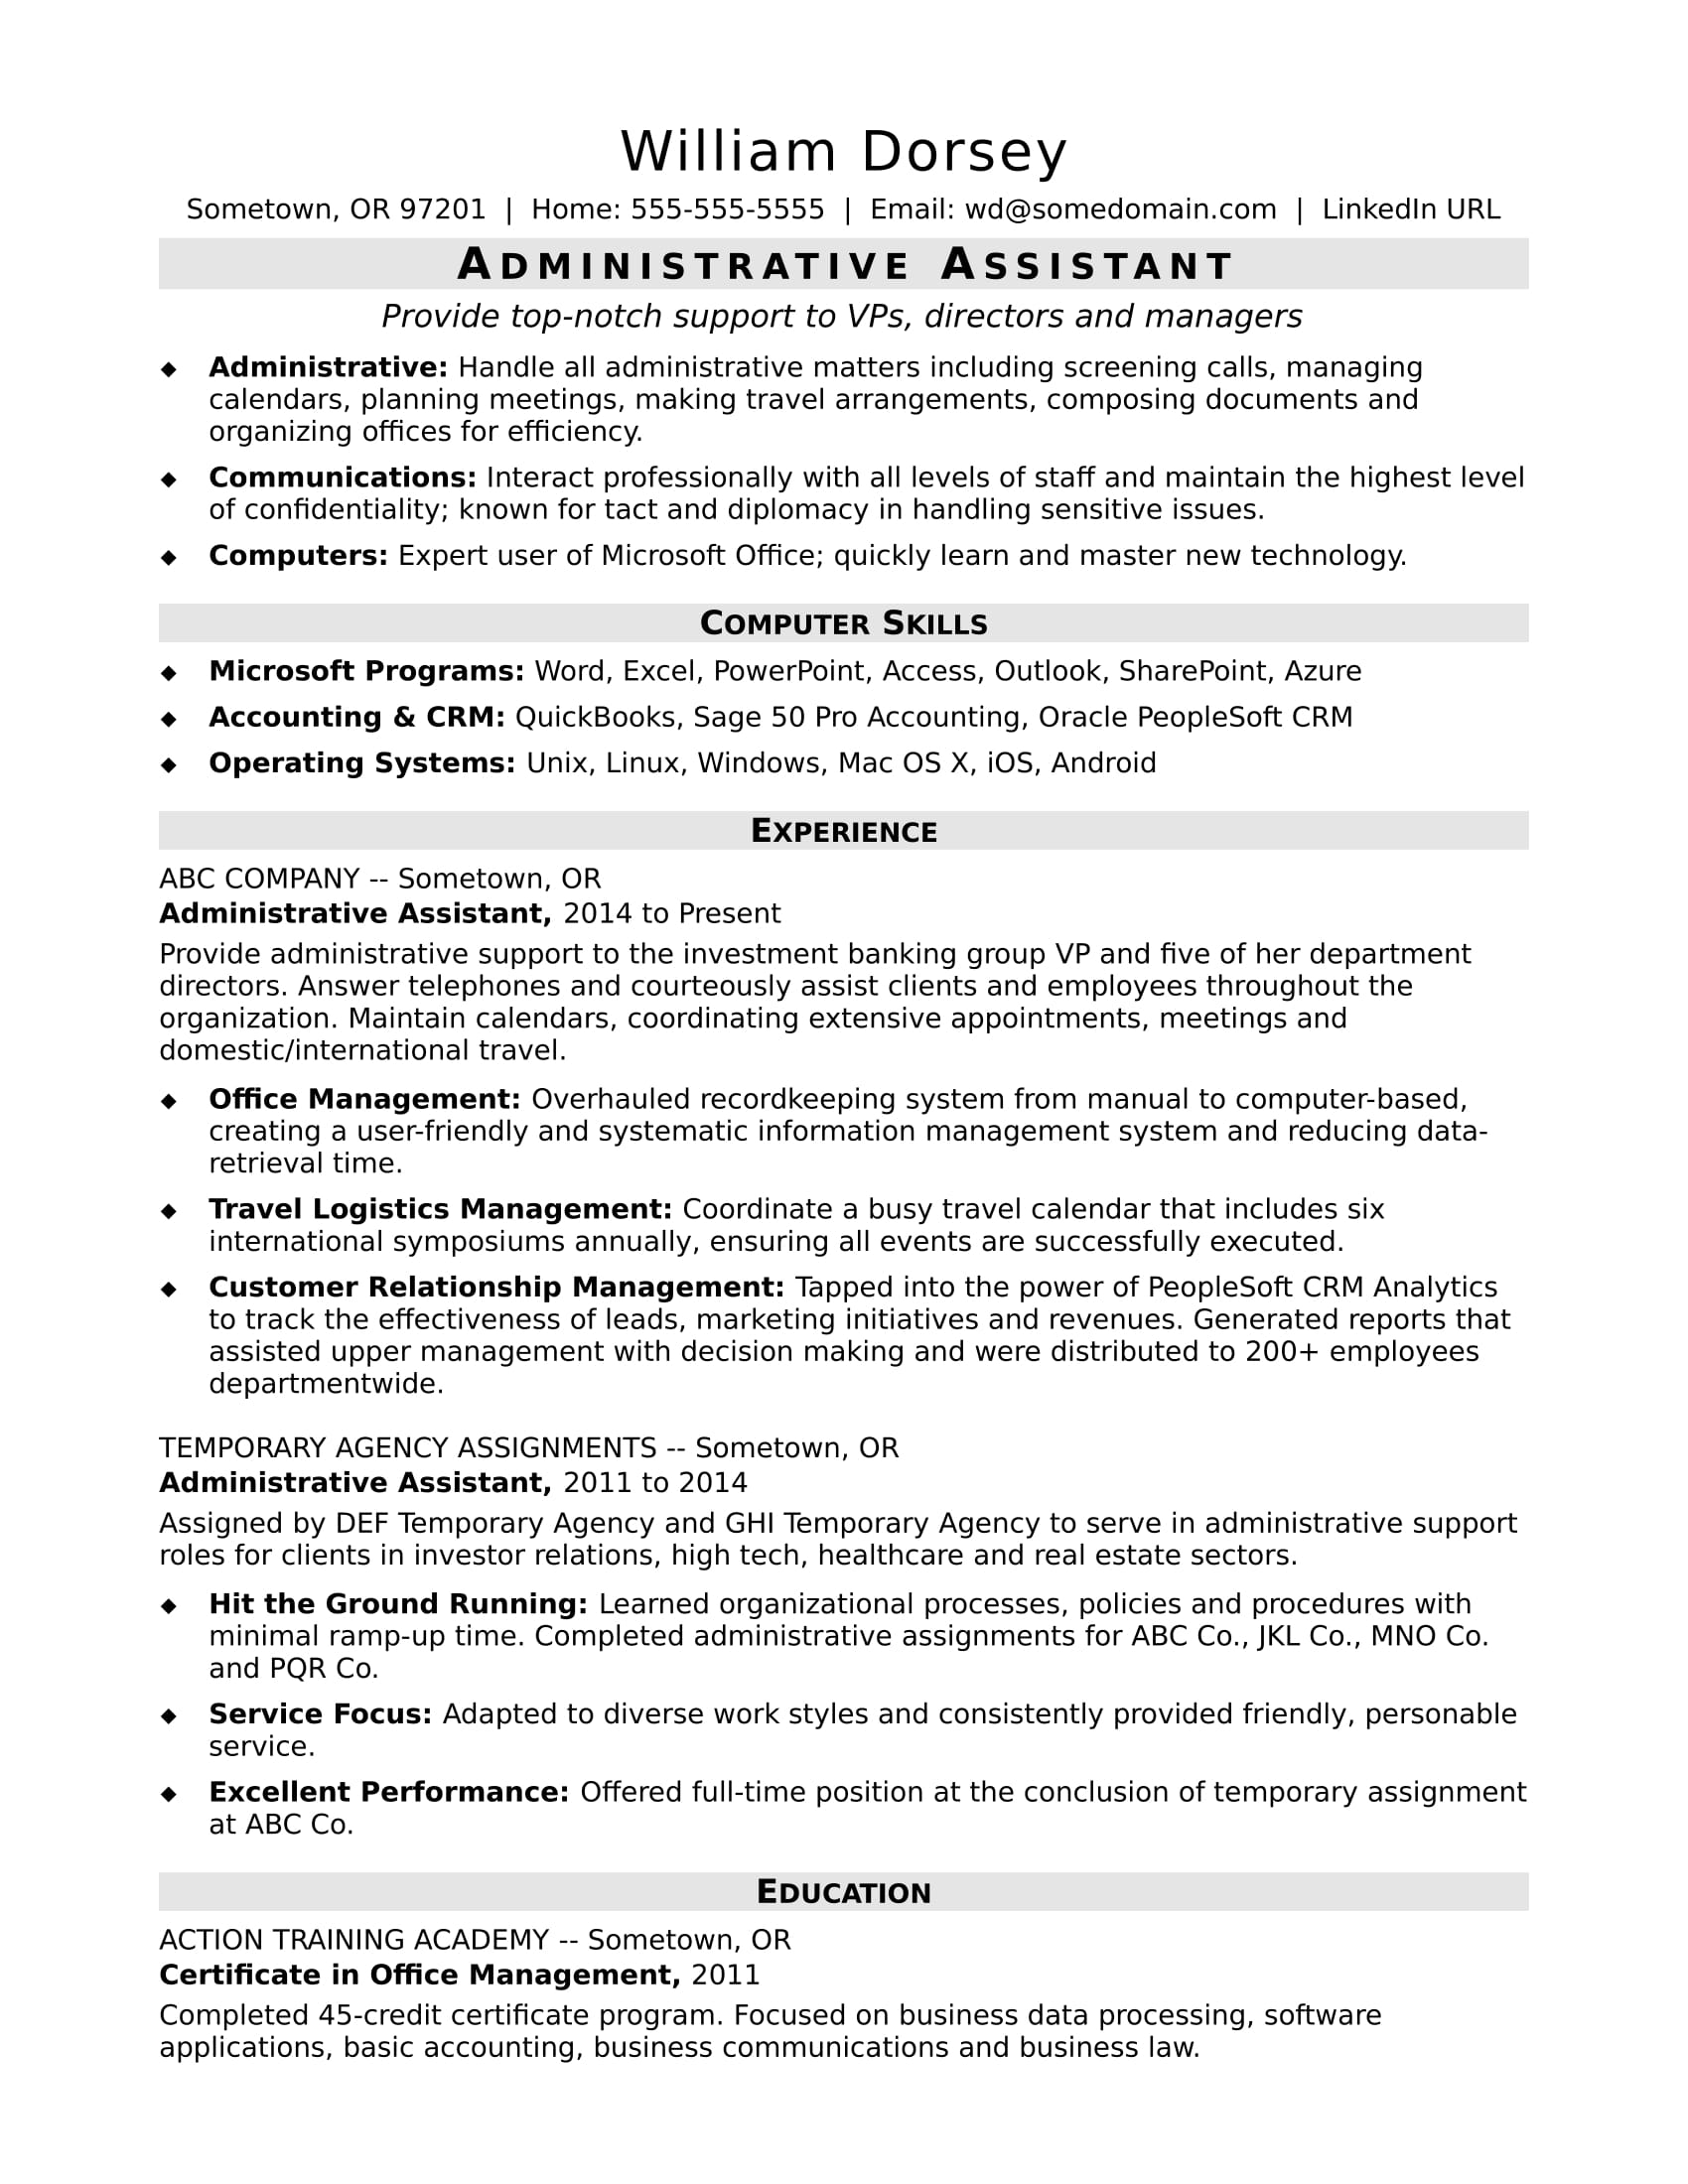 midlevel administrative assistant resume sample monster professional accounting Resume Administrative Professional Resume